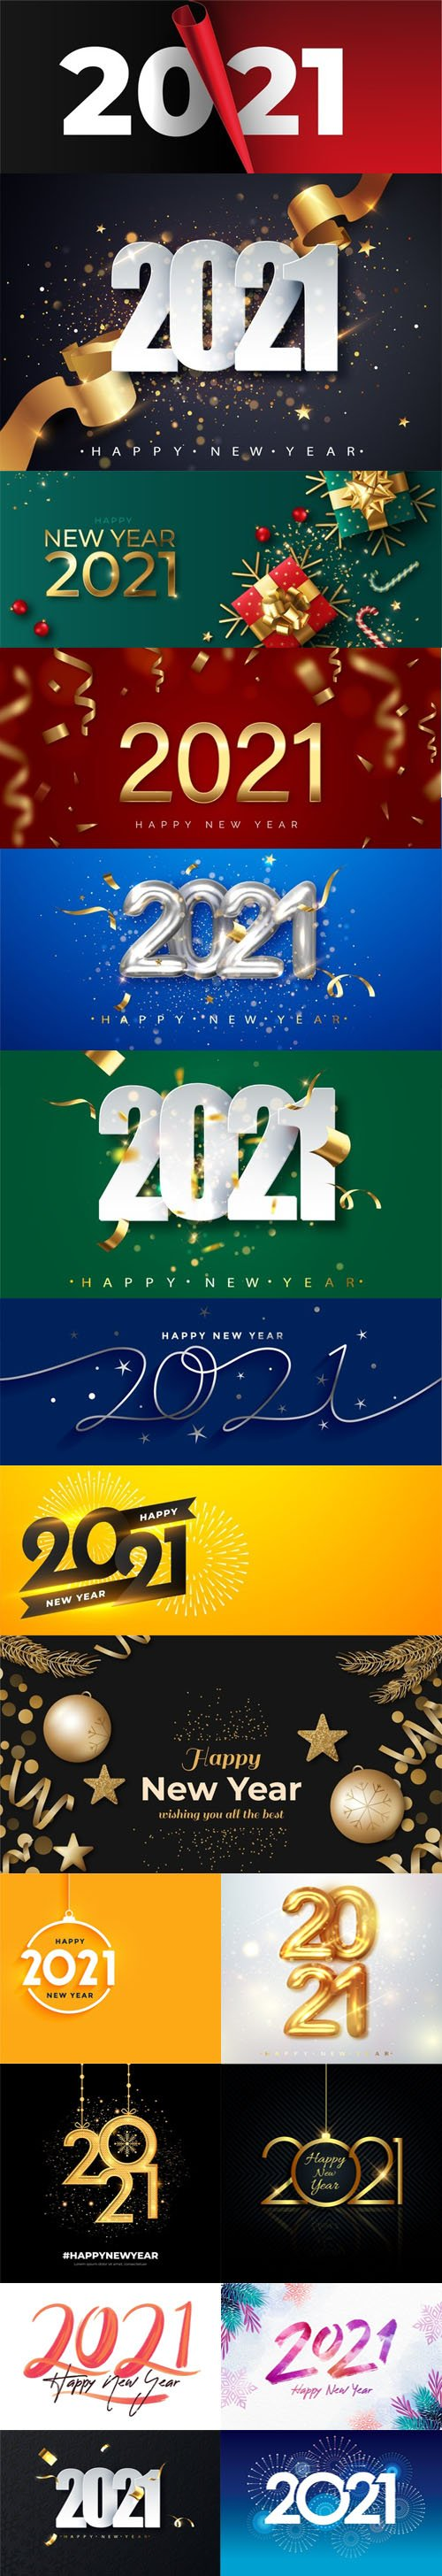 17 Happy New Year 2021 Backgrounds Collection in Vector